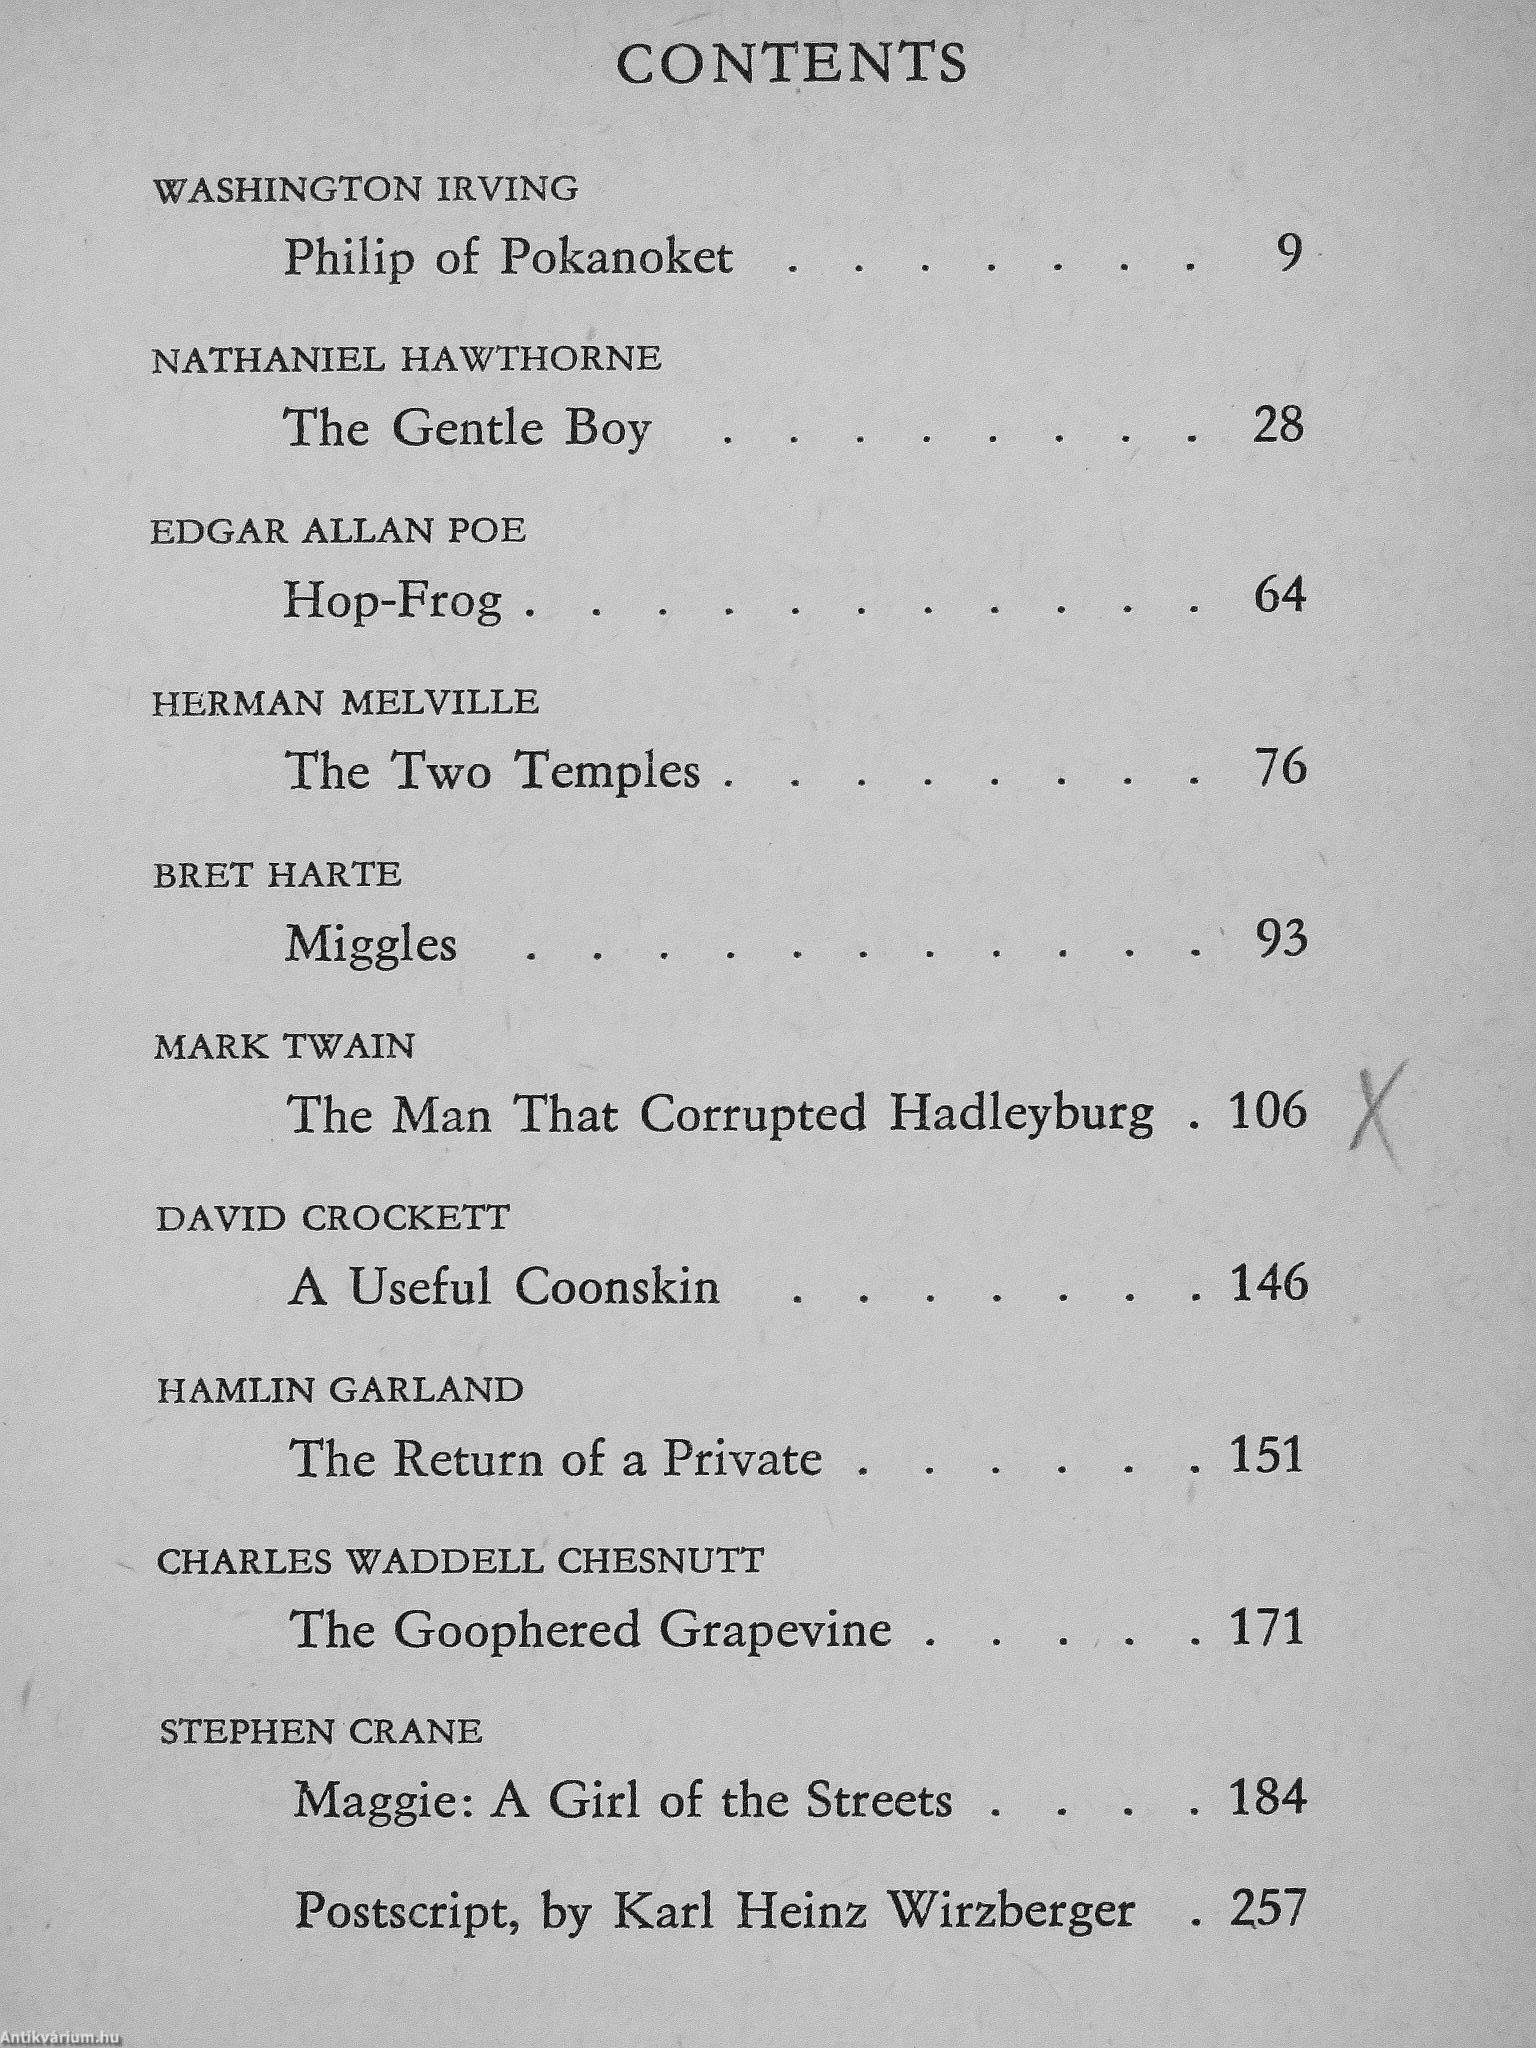 a comparison of nathaniel hawthorne and edgar allan poe in famous american authors This essay narrative styles in poe, melville, hawthorne and other  most classically american authors of the nineteenth century, melville, poe, and hawthorne, a .